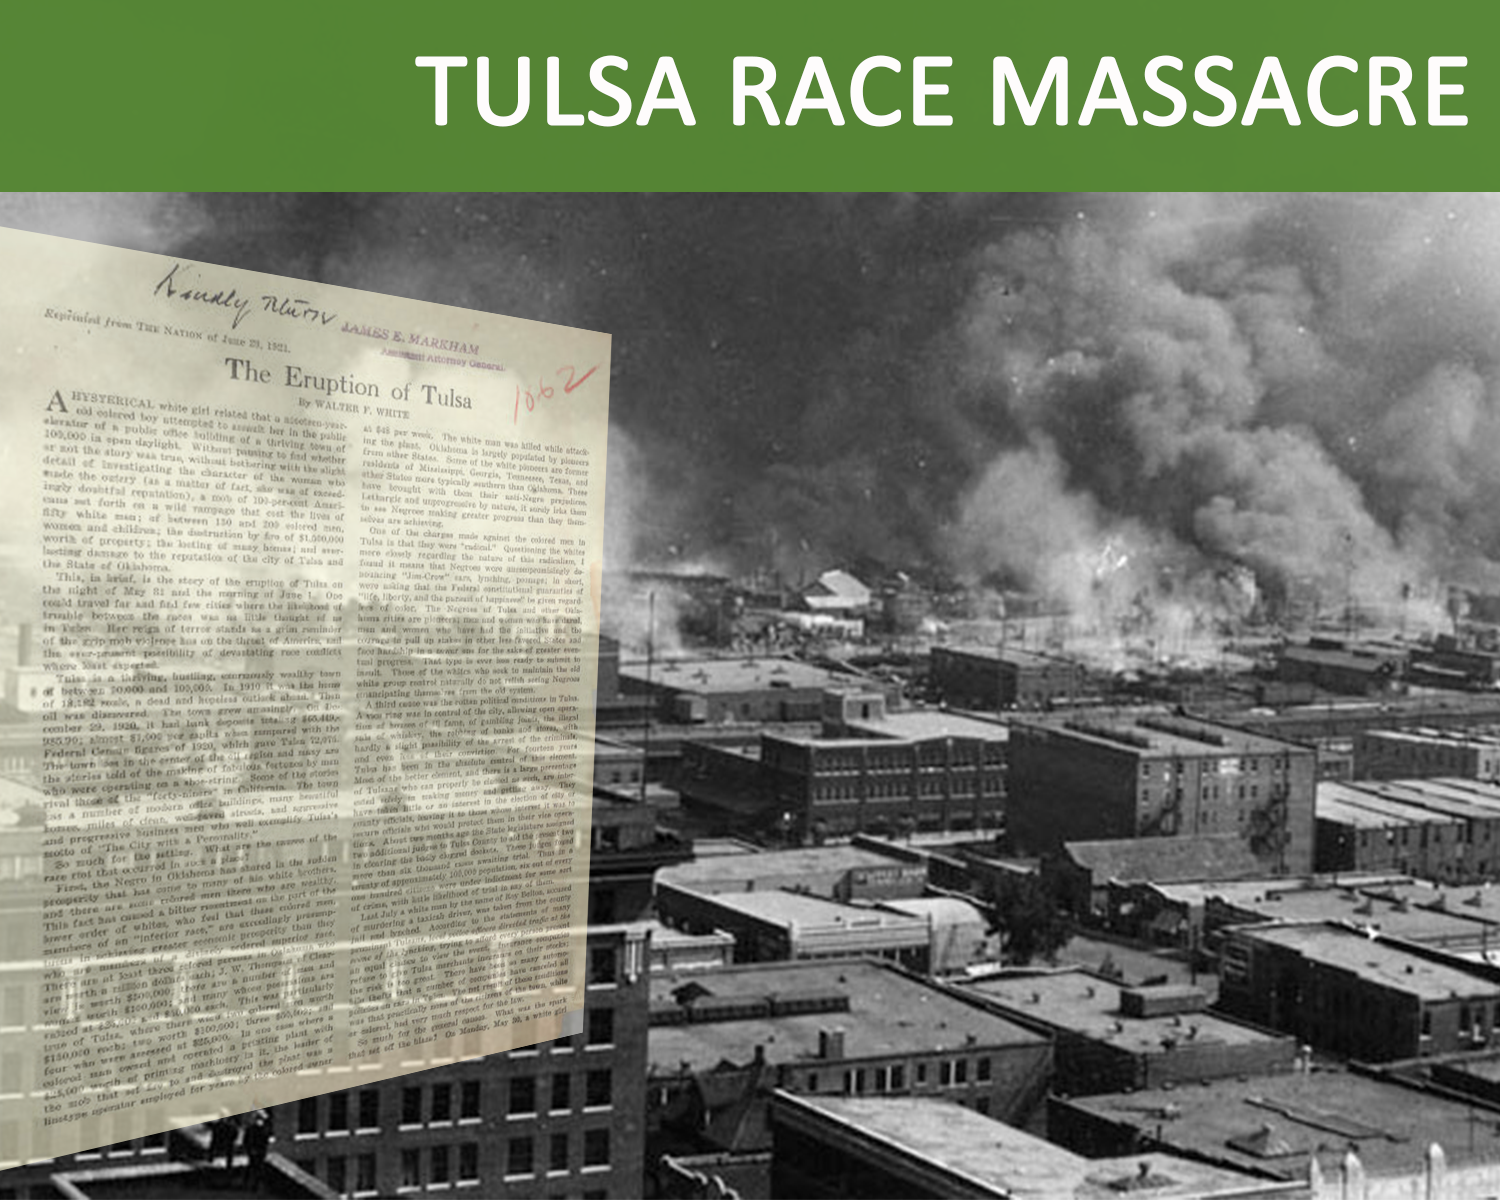 View the collection of documents from the Tulsa Race Massacre of 1921